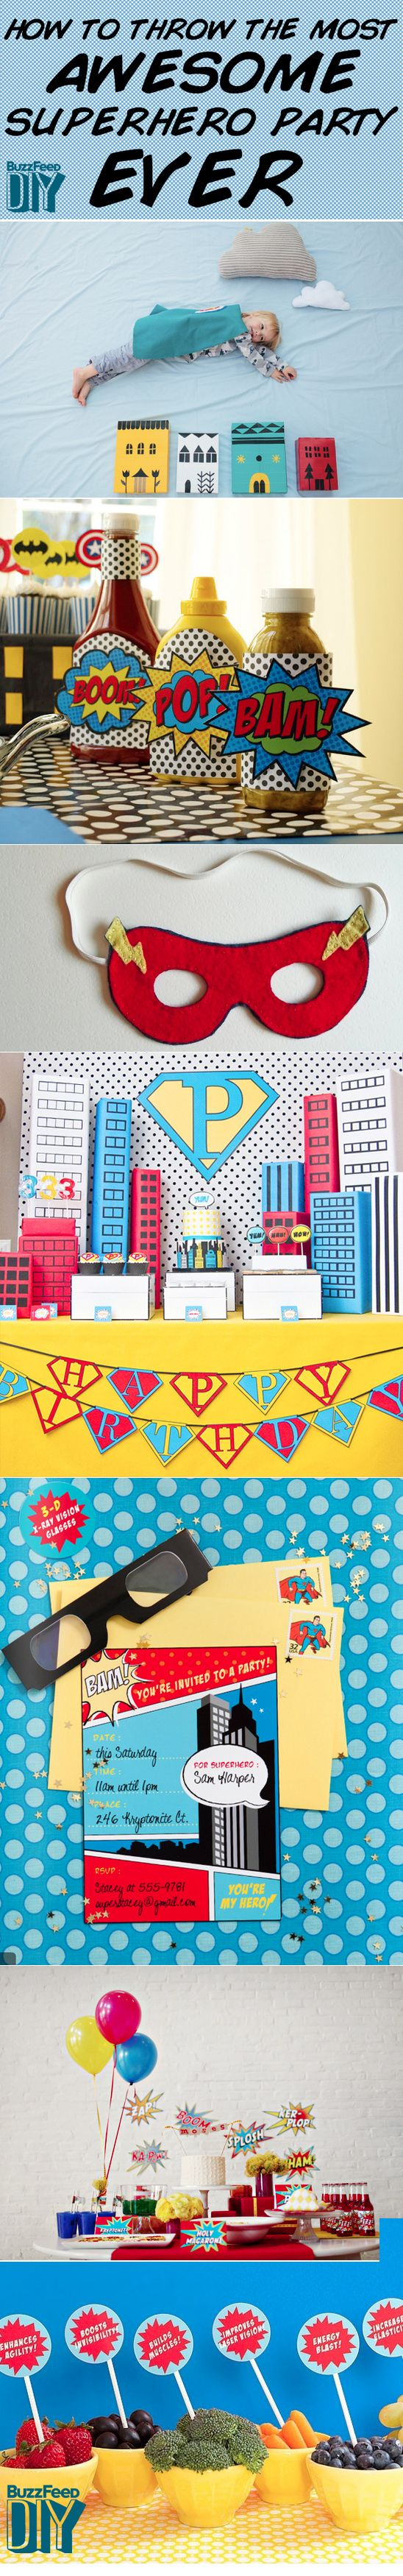 images about fiesta on pinterest disney inside out super